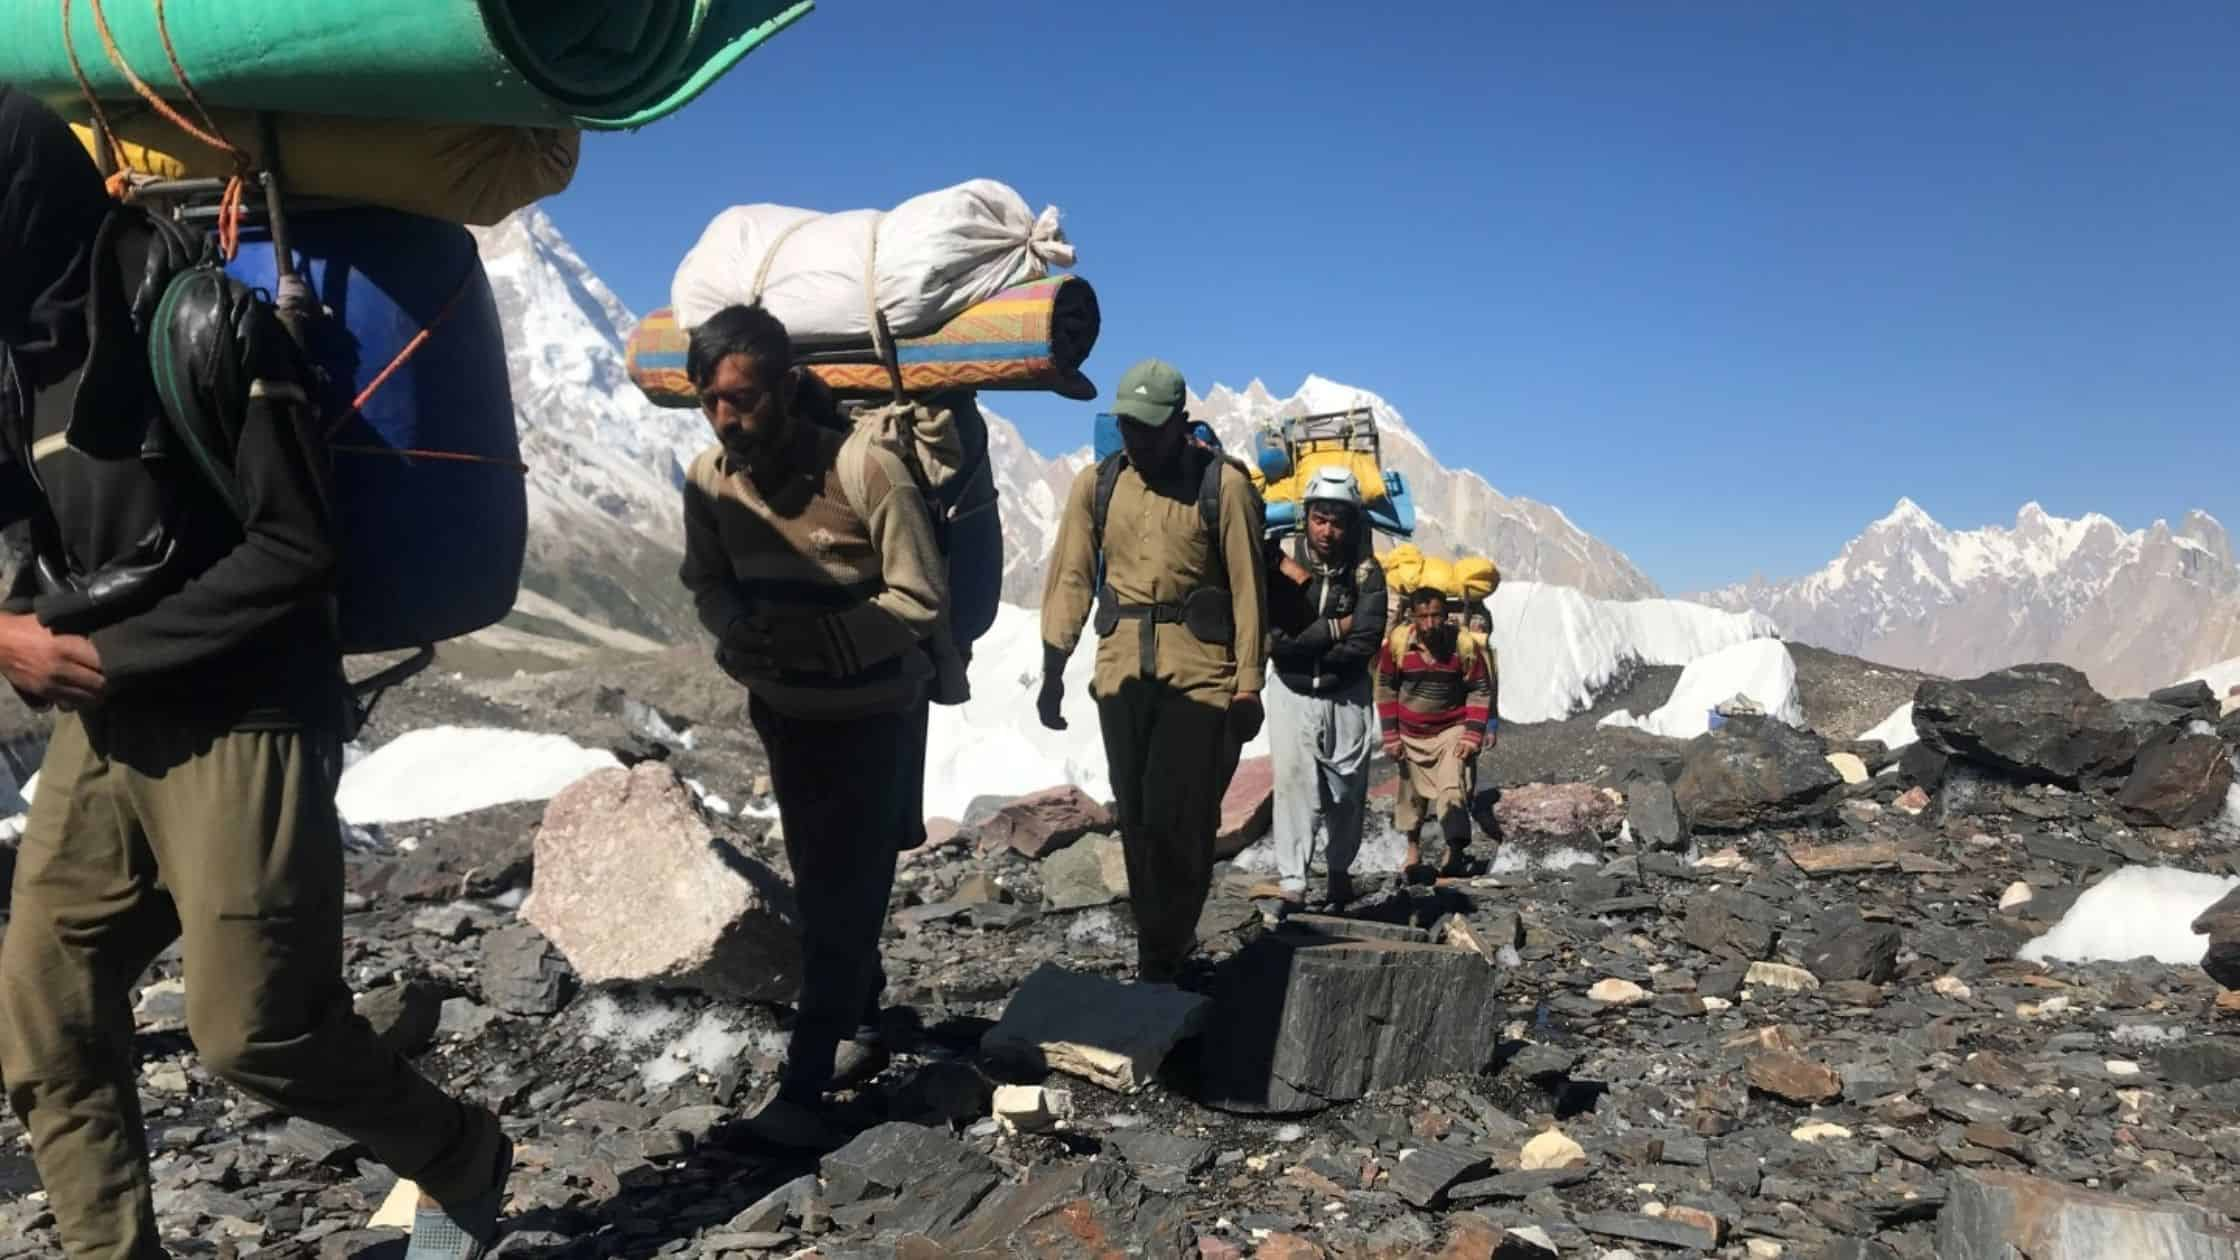 Porters carrying luggage to K2 base camp trek